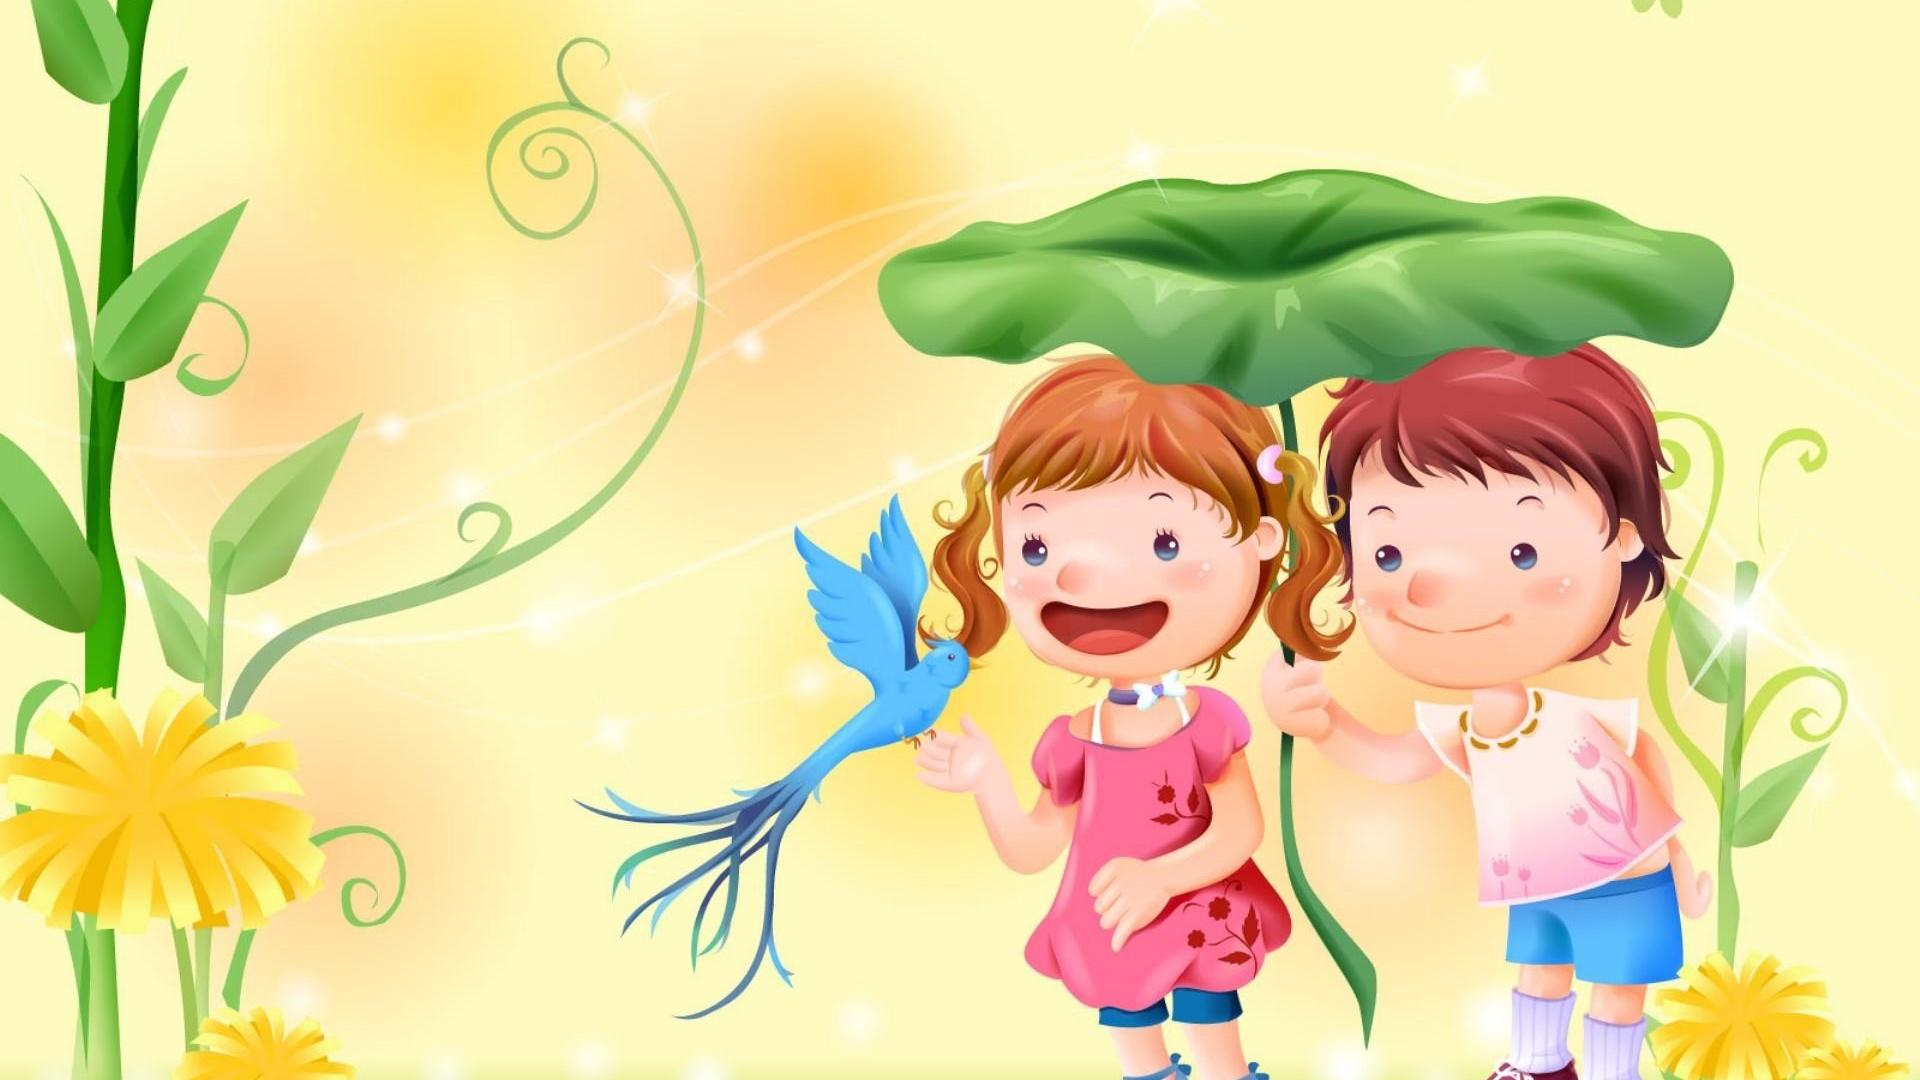 childhood Love Wallpaper : 21 children wallpapers wallpaper other cartoons romantic cartoon HD 603 :: children Love Hd ...